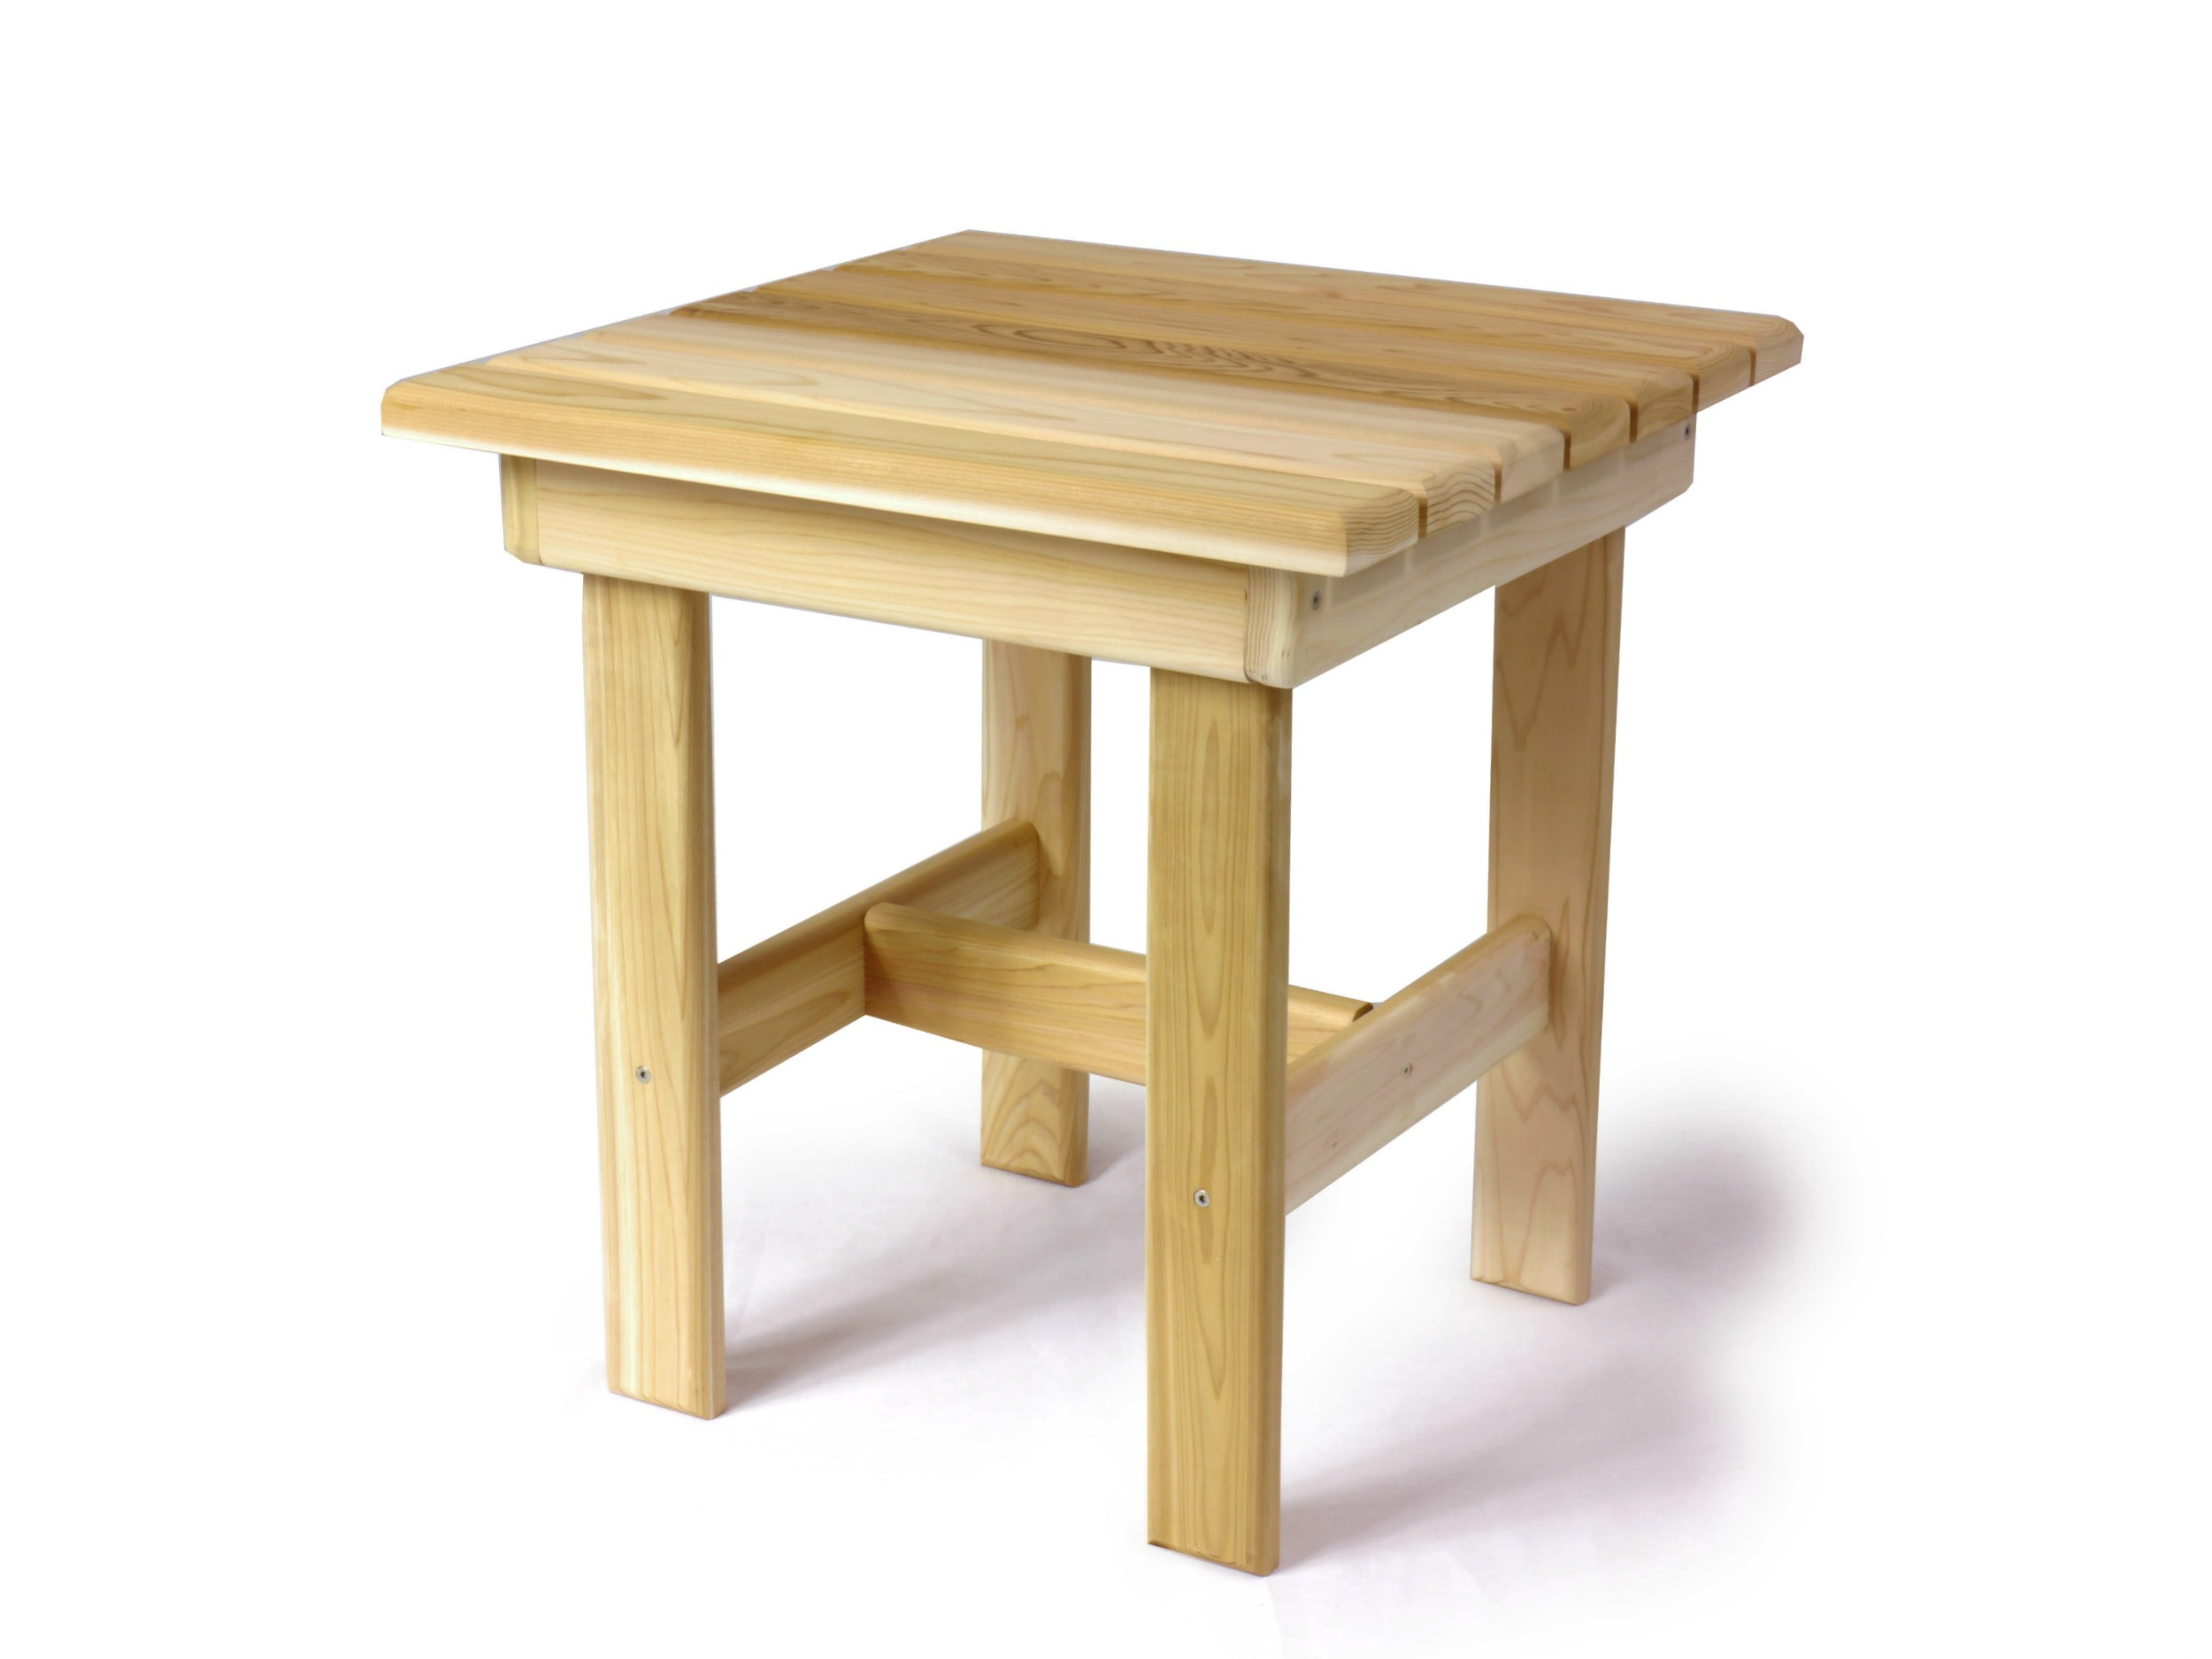 20″ Square Side Table